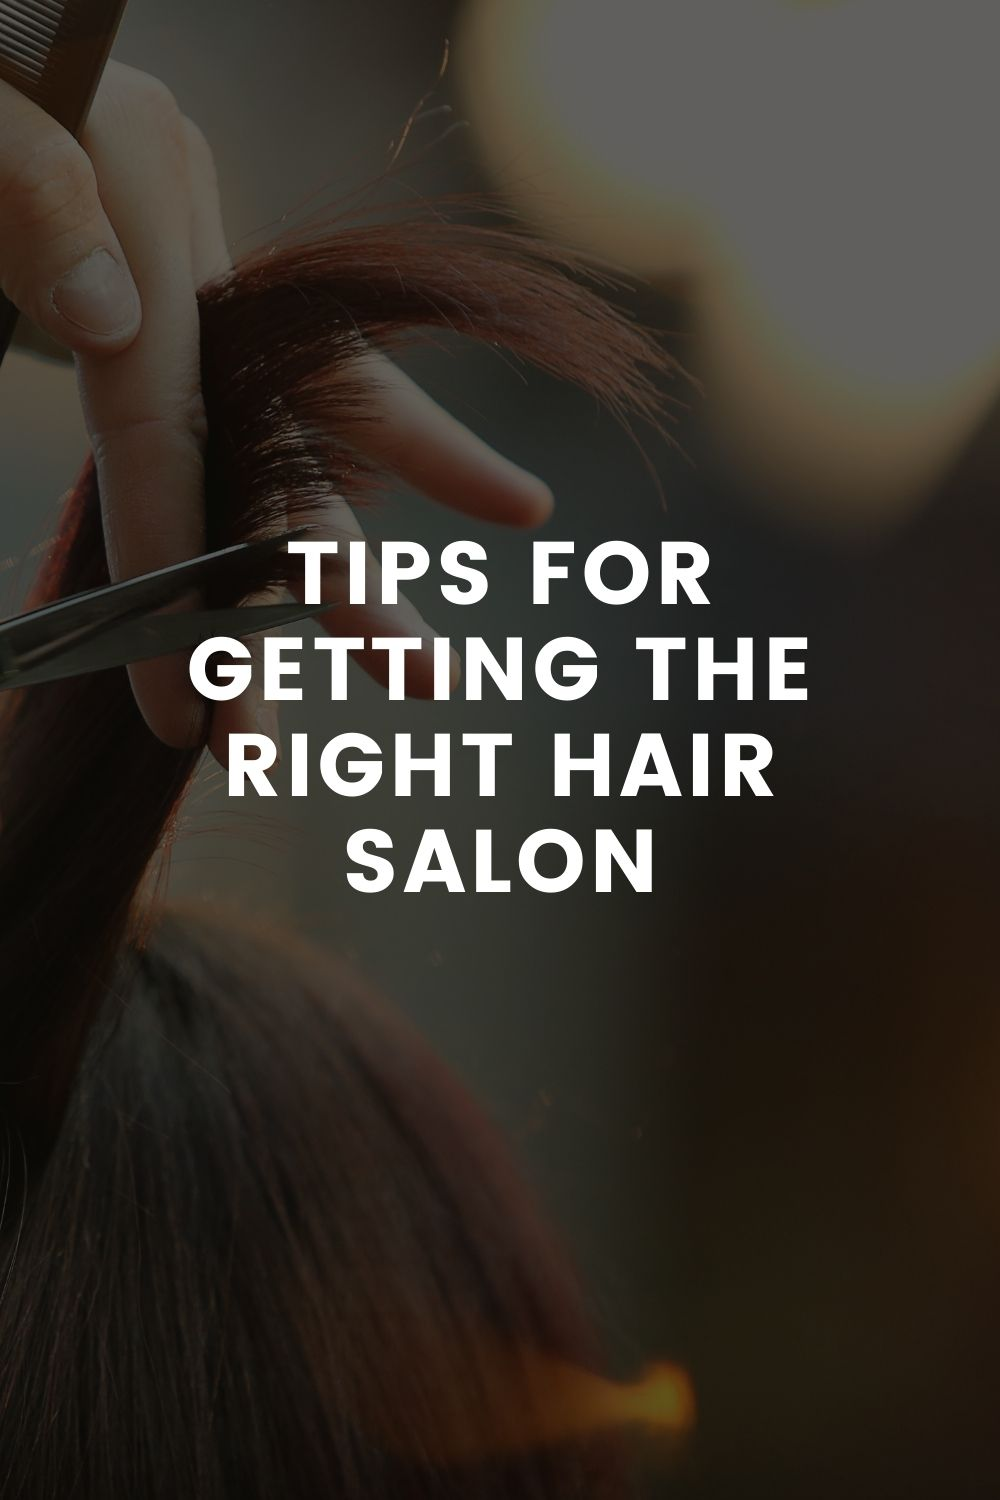 Tips For Getting The Right Hair Salon